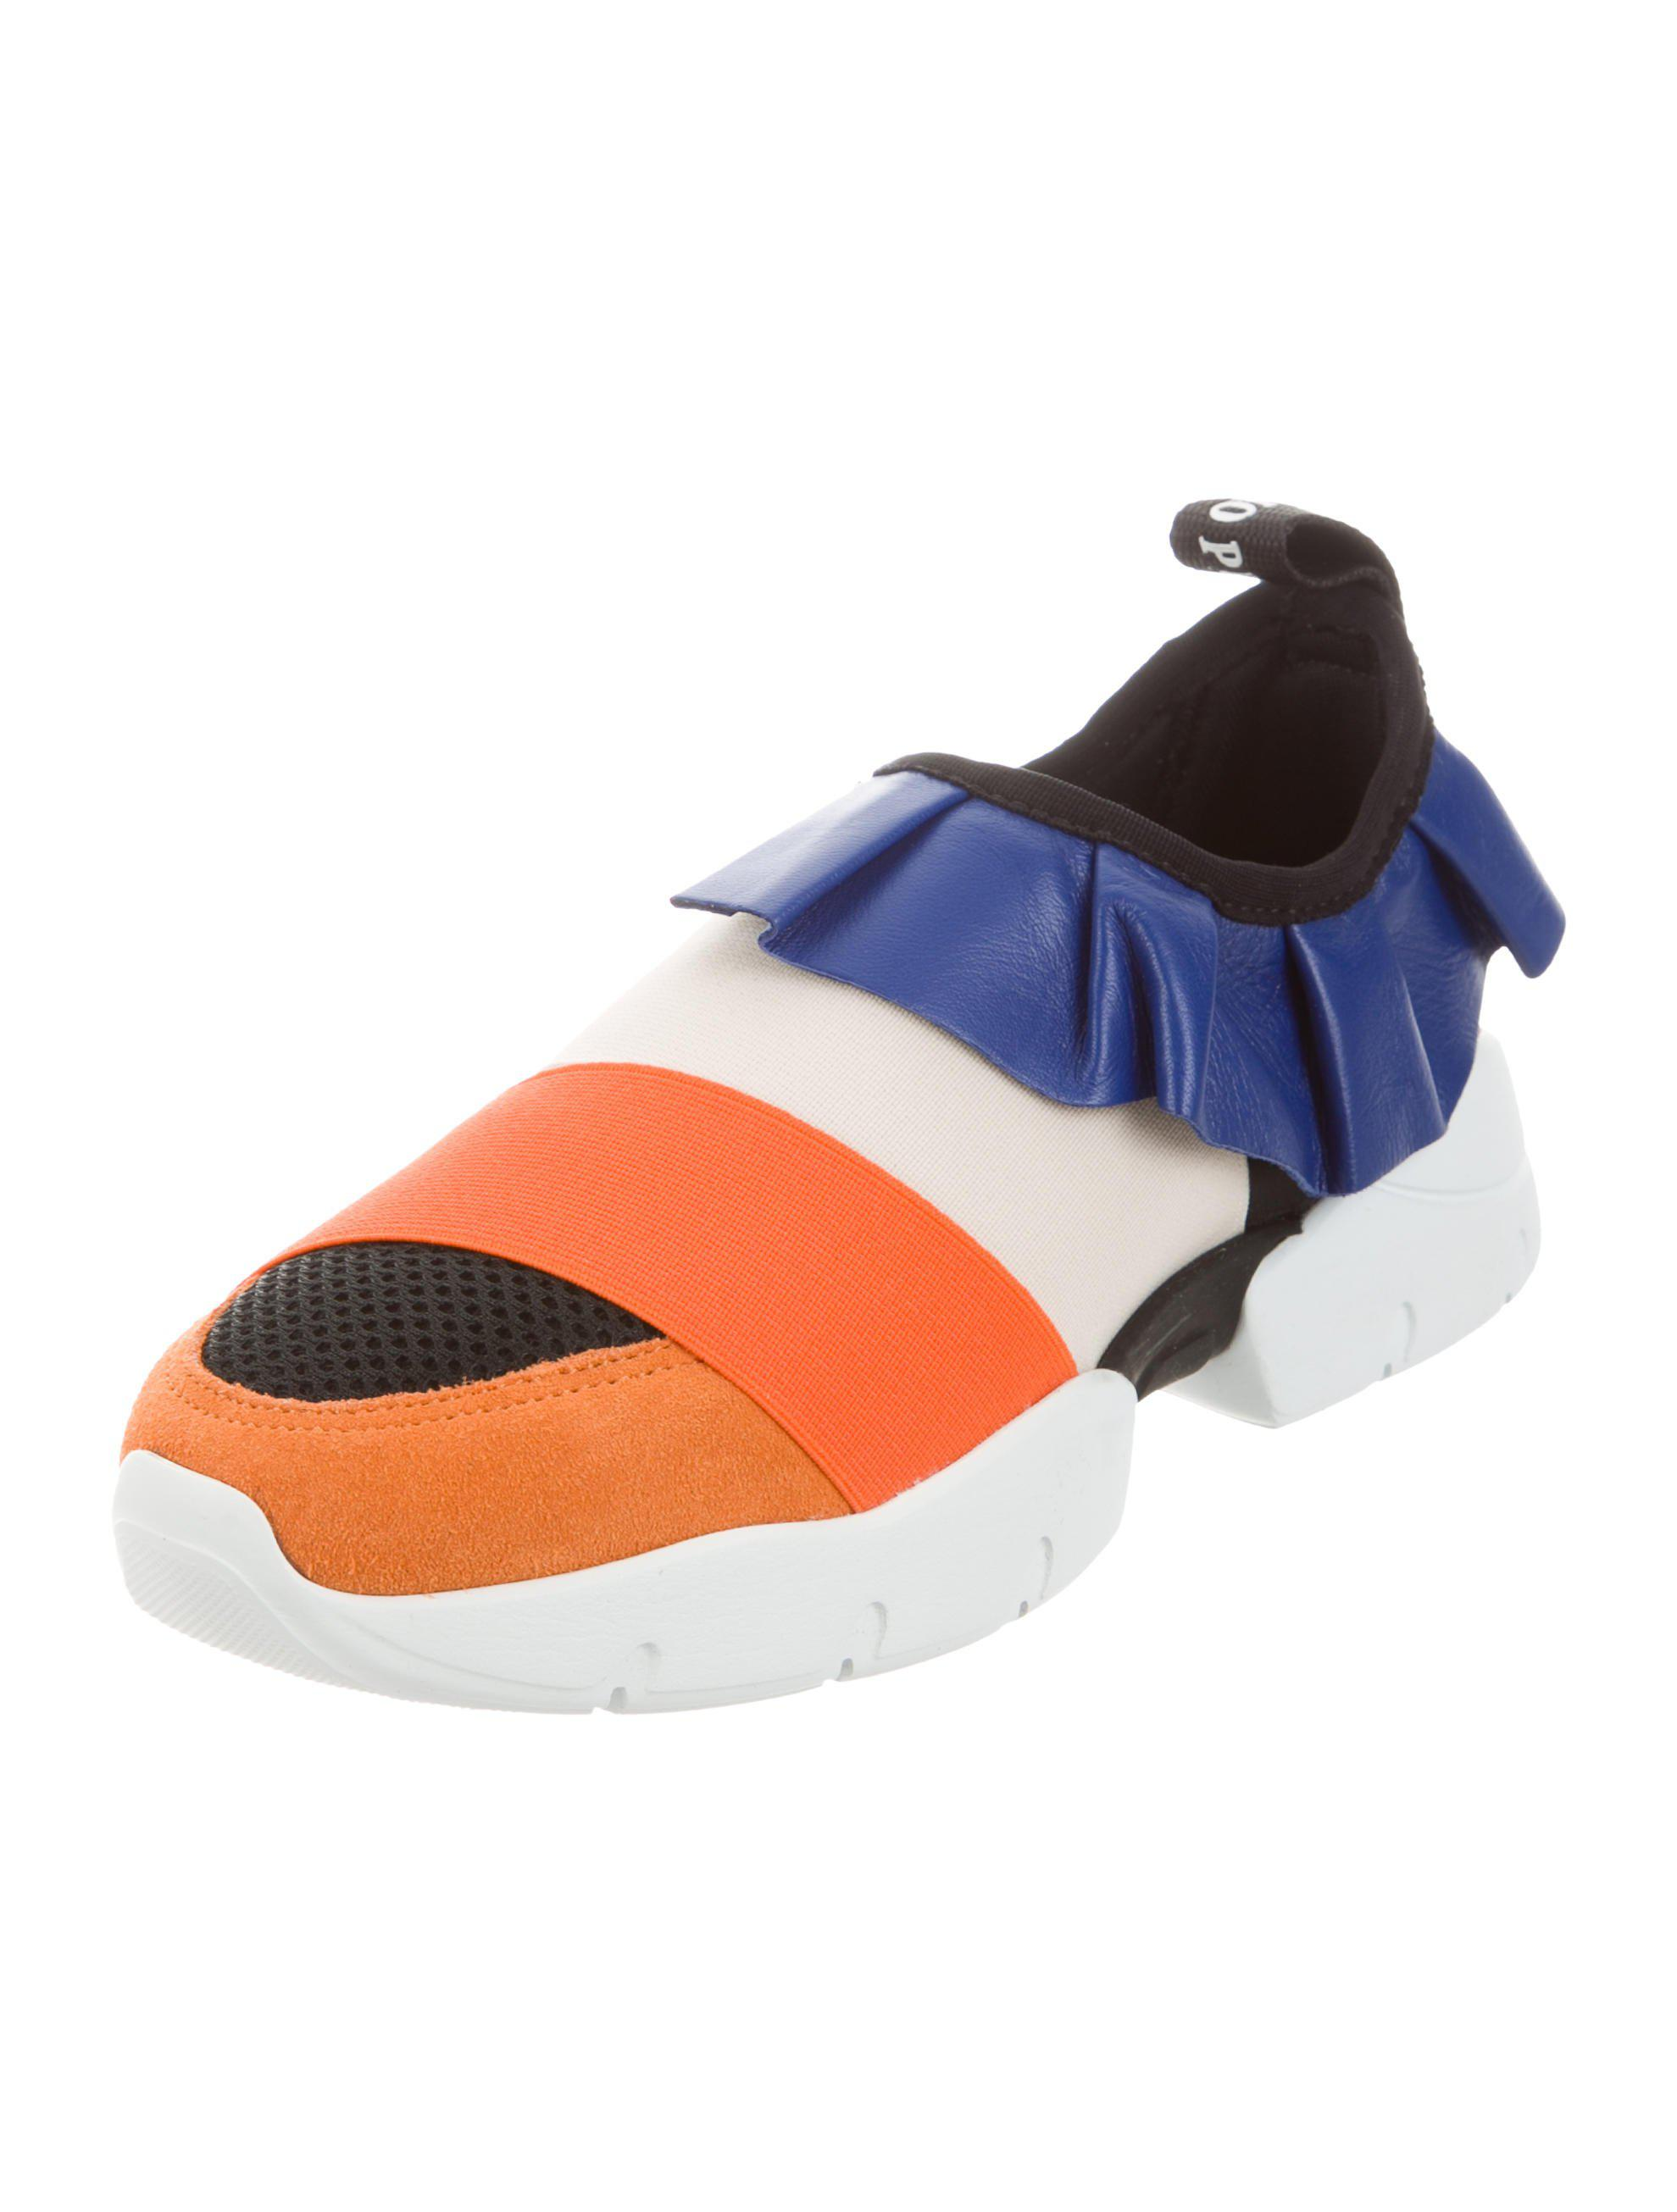 Emilio Pucci 2017 Ruffle Sneakers w/ Tags cheap original for sale official site QEh86X3pL